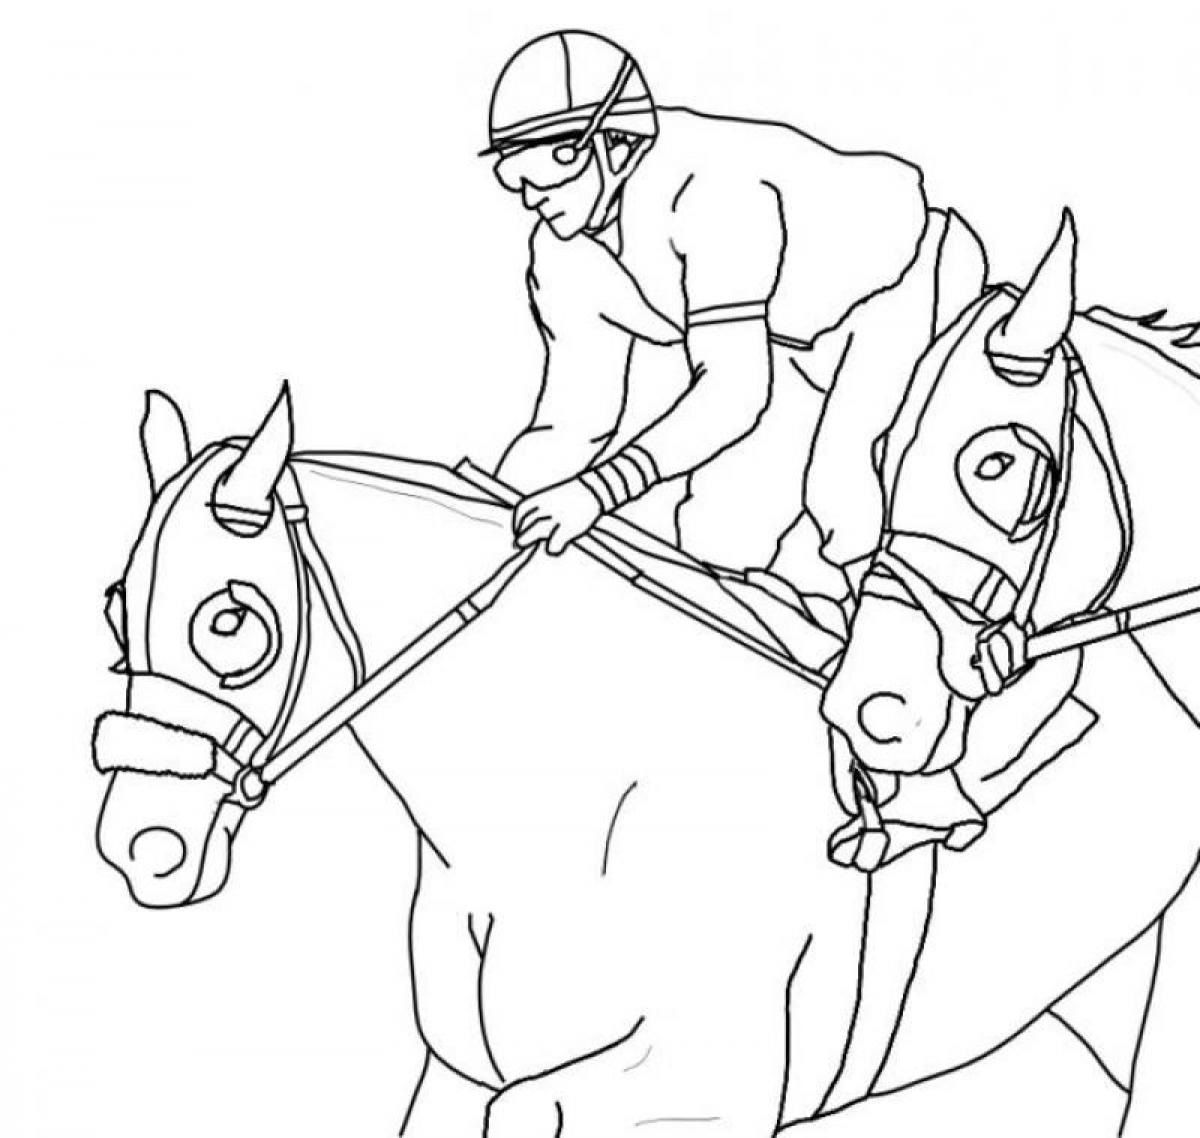 Printable Horse Coloring Pages For Kids Horse Coloring Horse